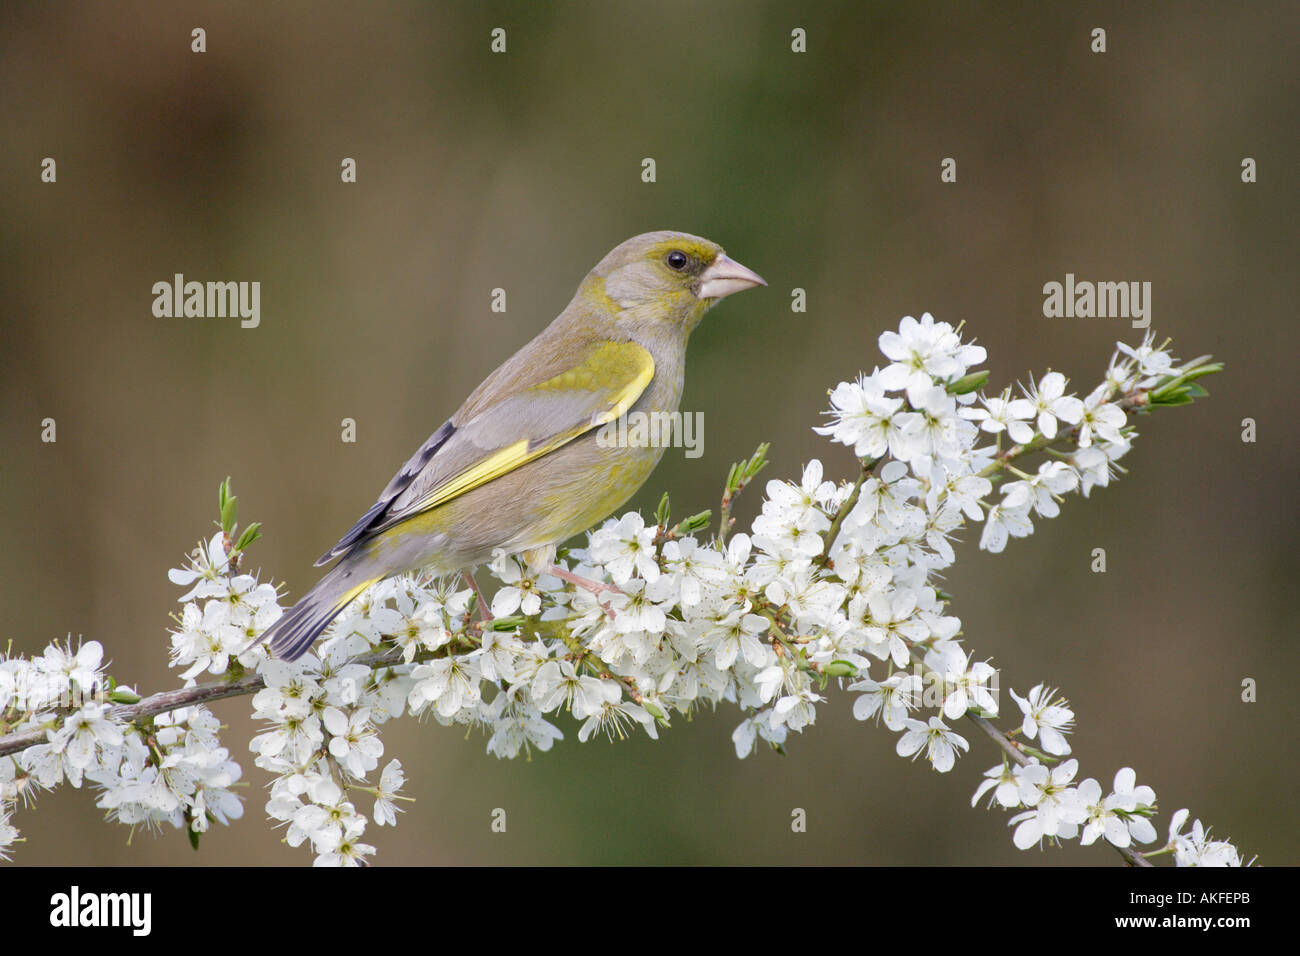 Greenfinch on Blackthorn Blossom 3 Stock Photo